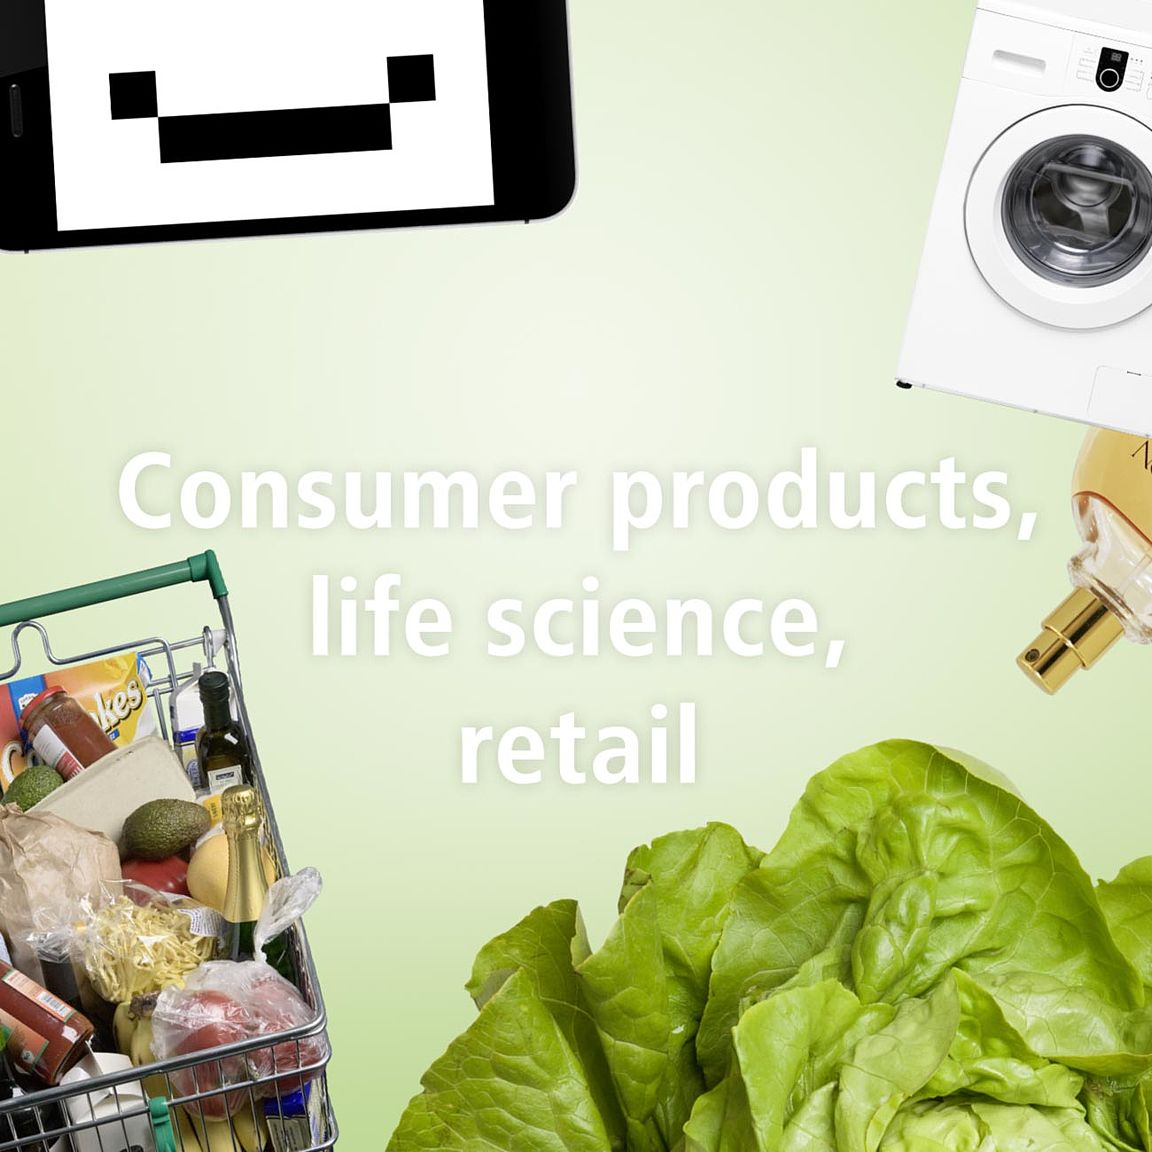 Consumer products, life science, retail